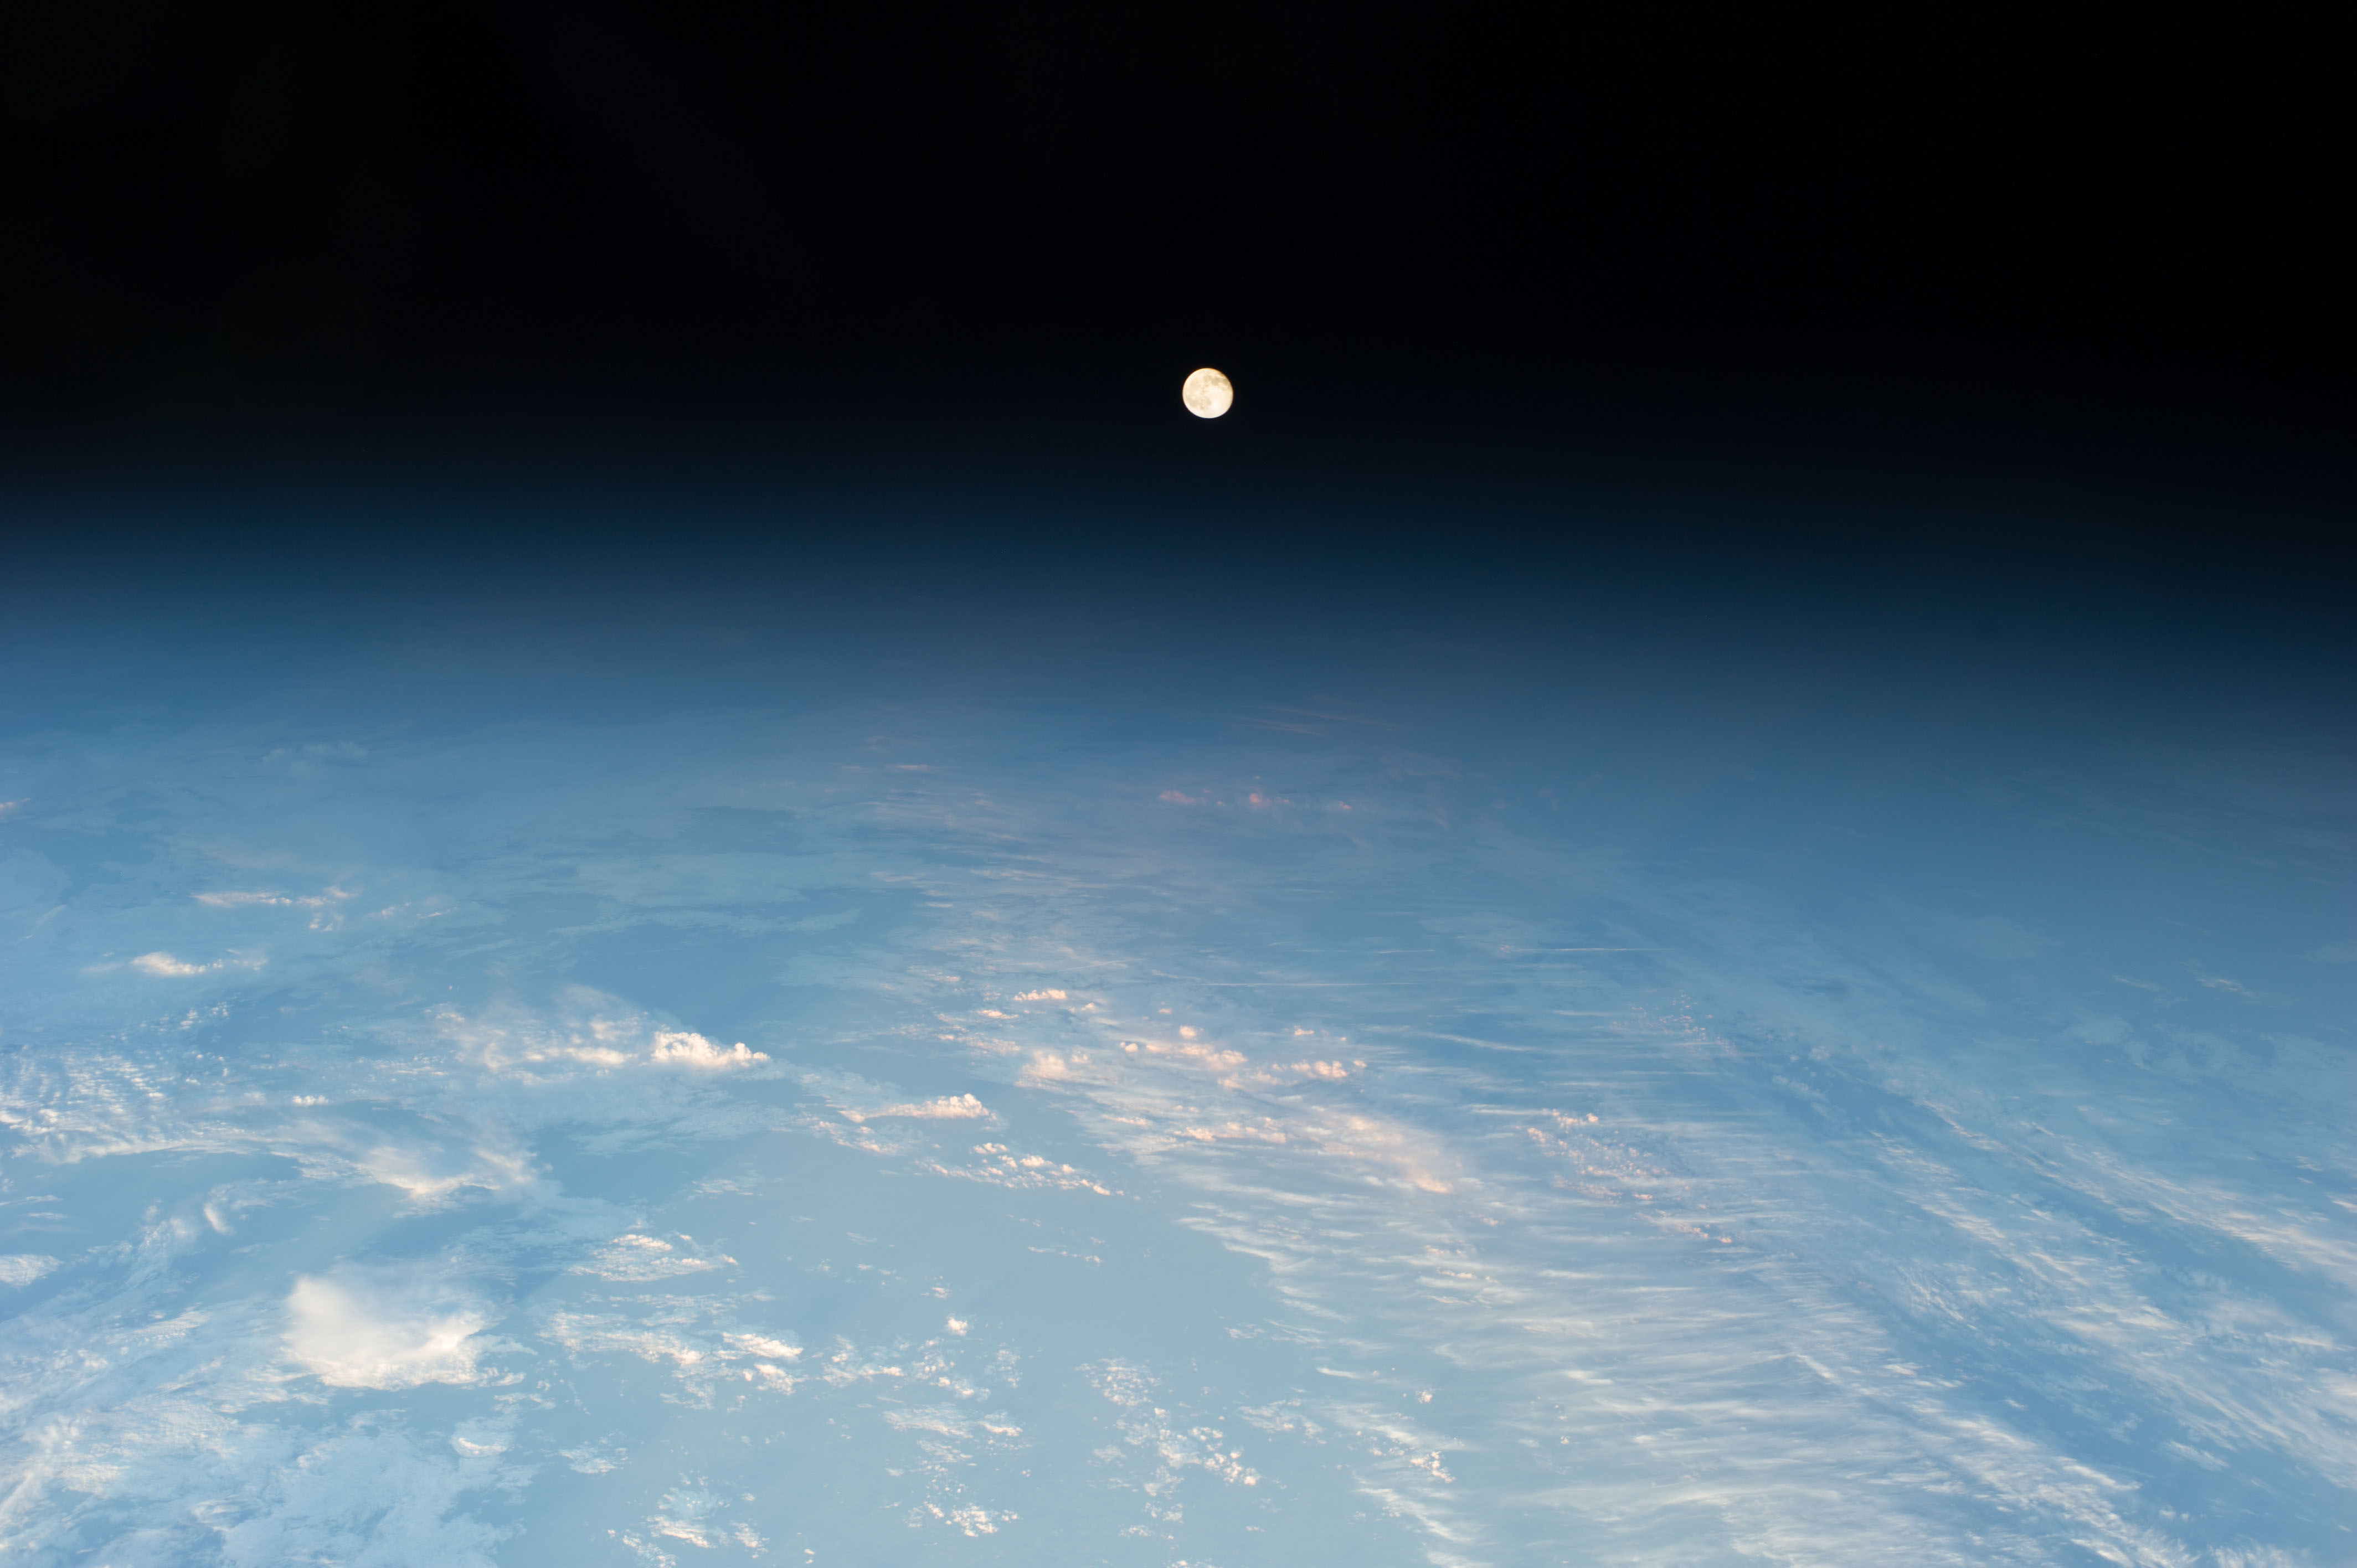 Station View Of Waning Gibbous Moon Nasa